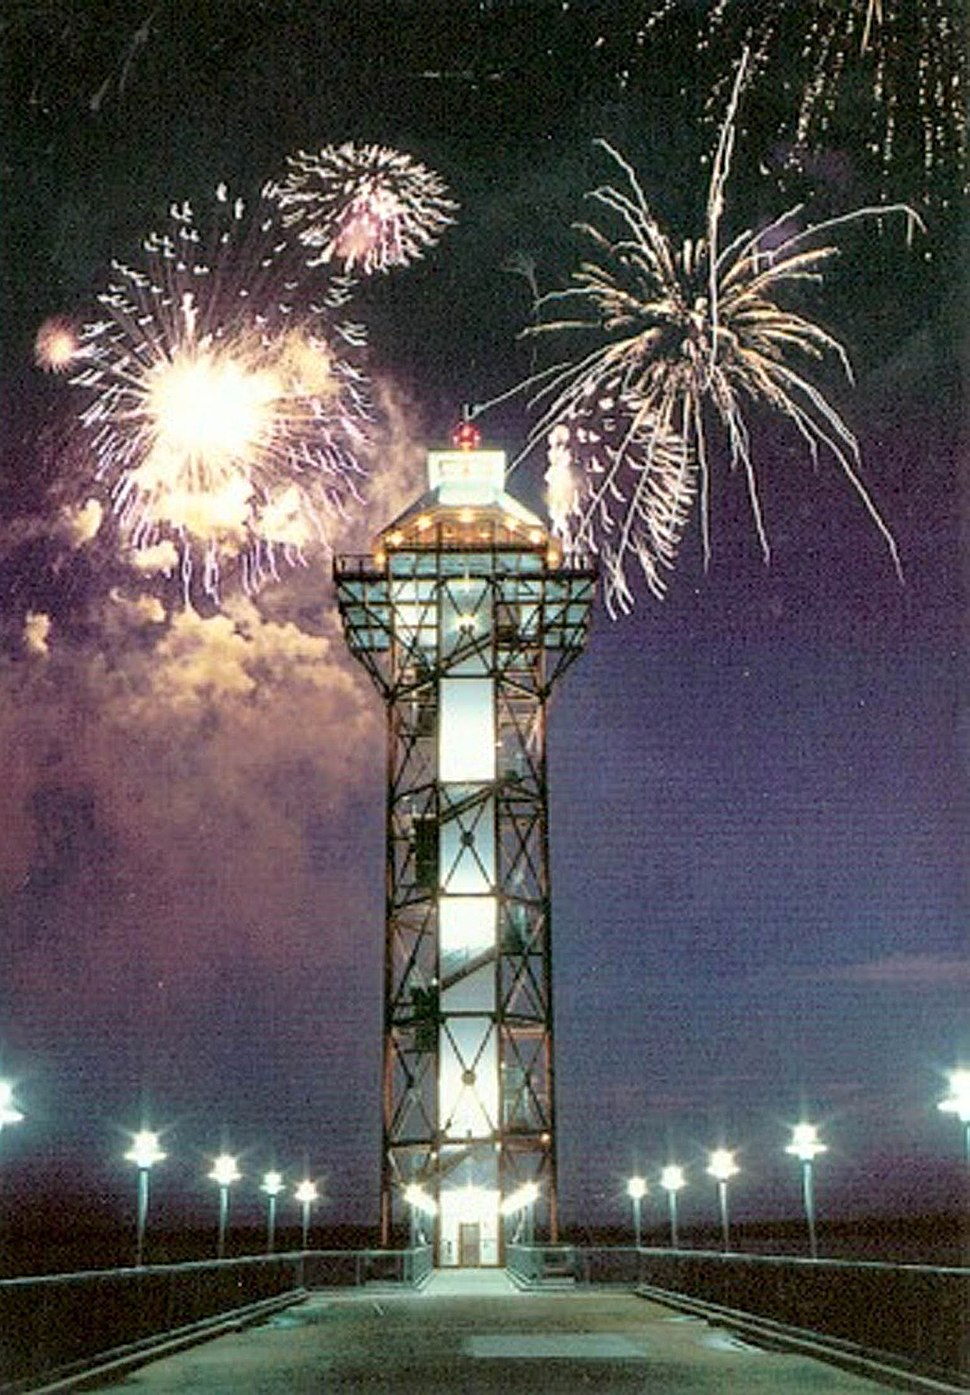 Bicentennial Tower with Fireworks